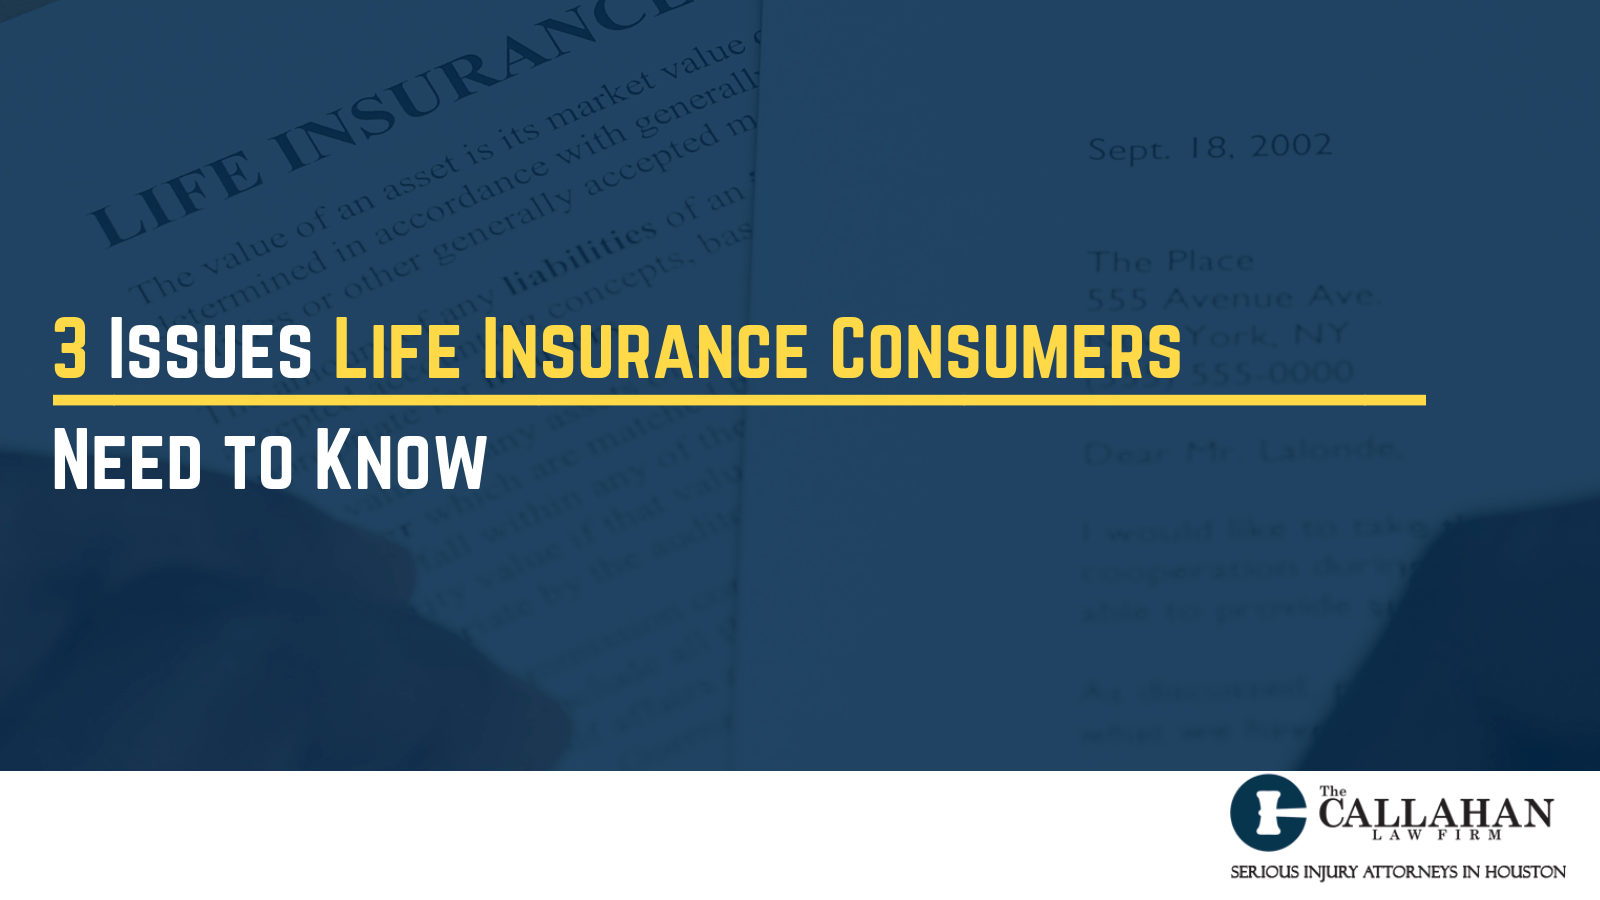 3 Issues Life Insurance Consumers Need to Know